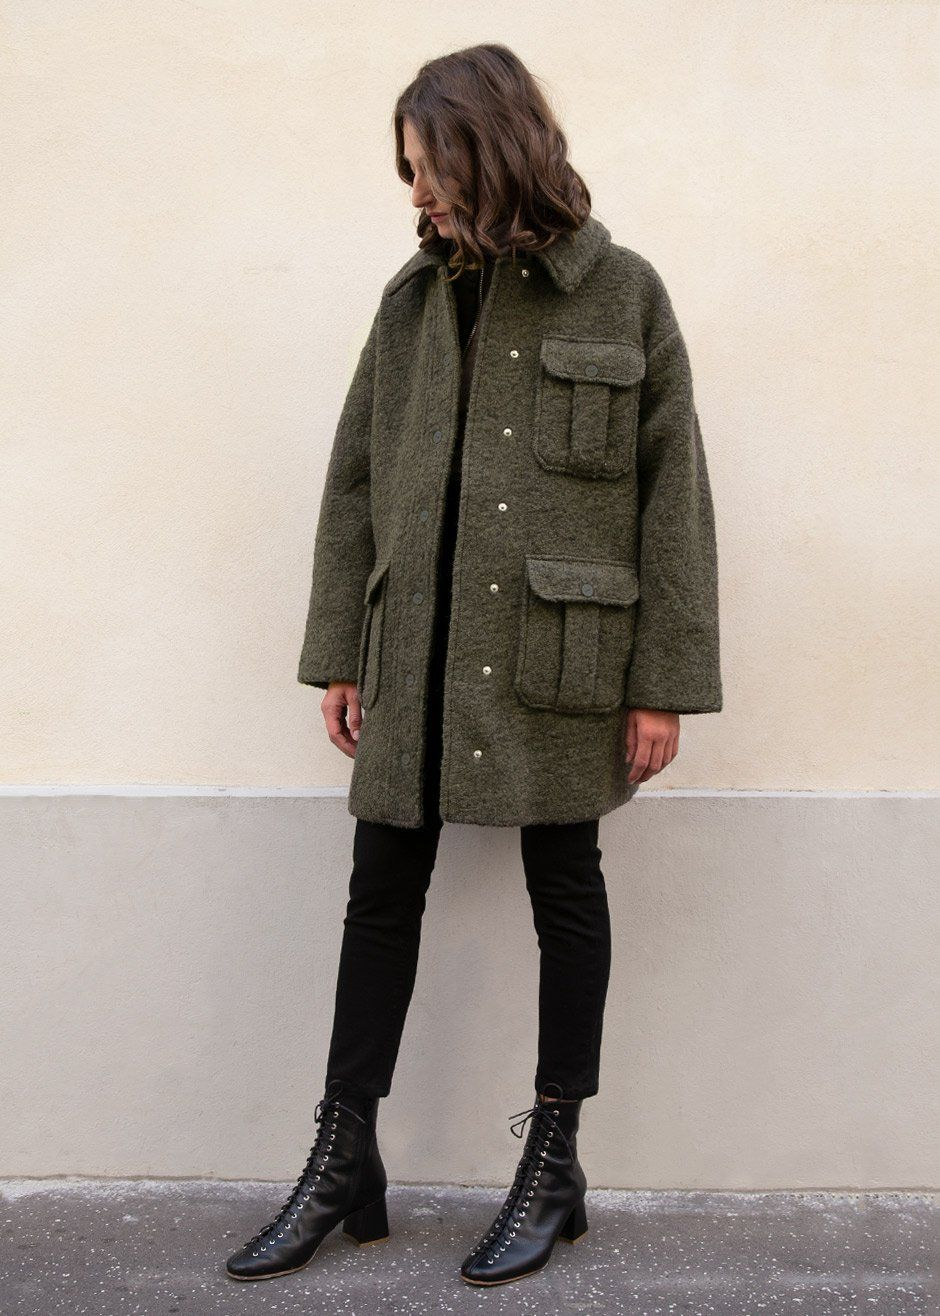 Boucle Wool Jacket In Kalamata By Ganni The Frankie Shop Wool Jacket Fall Winter Outfits Winter Attire